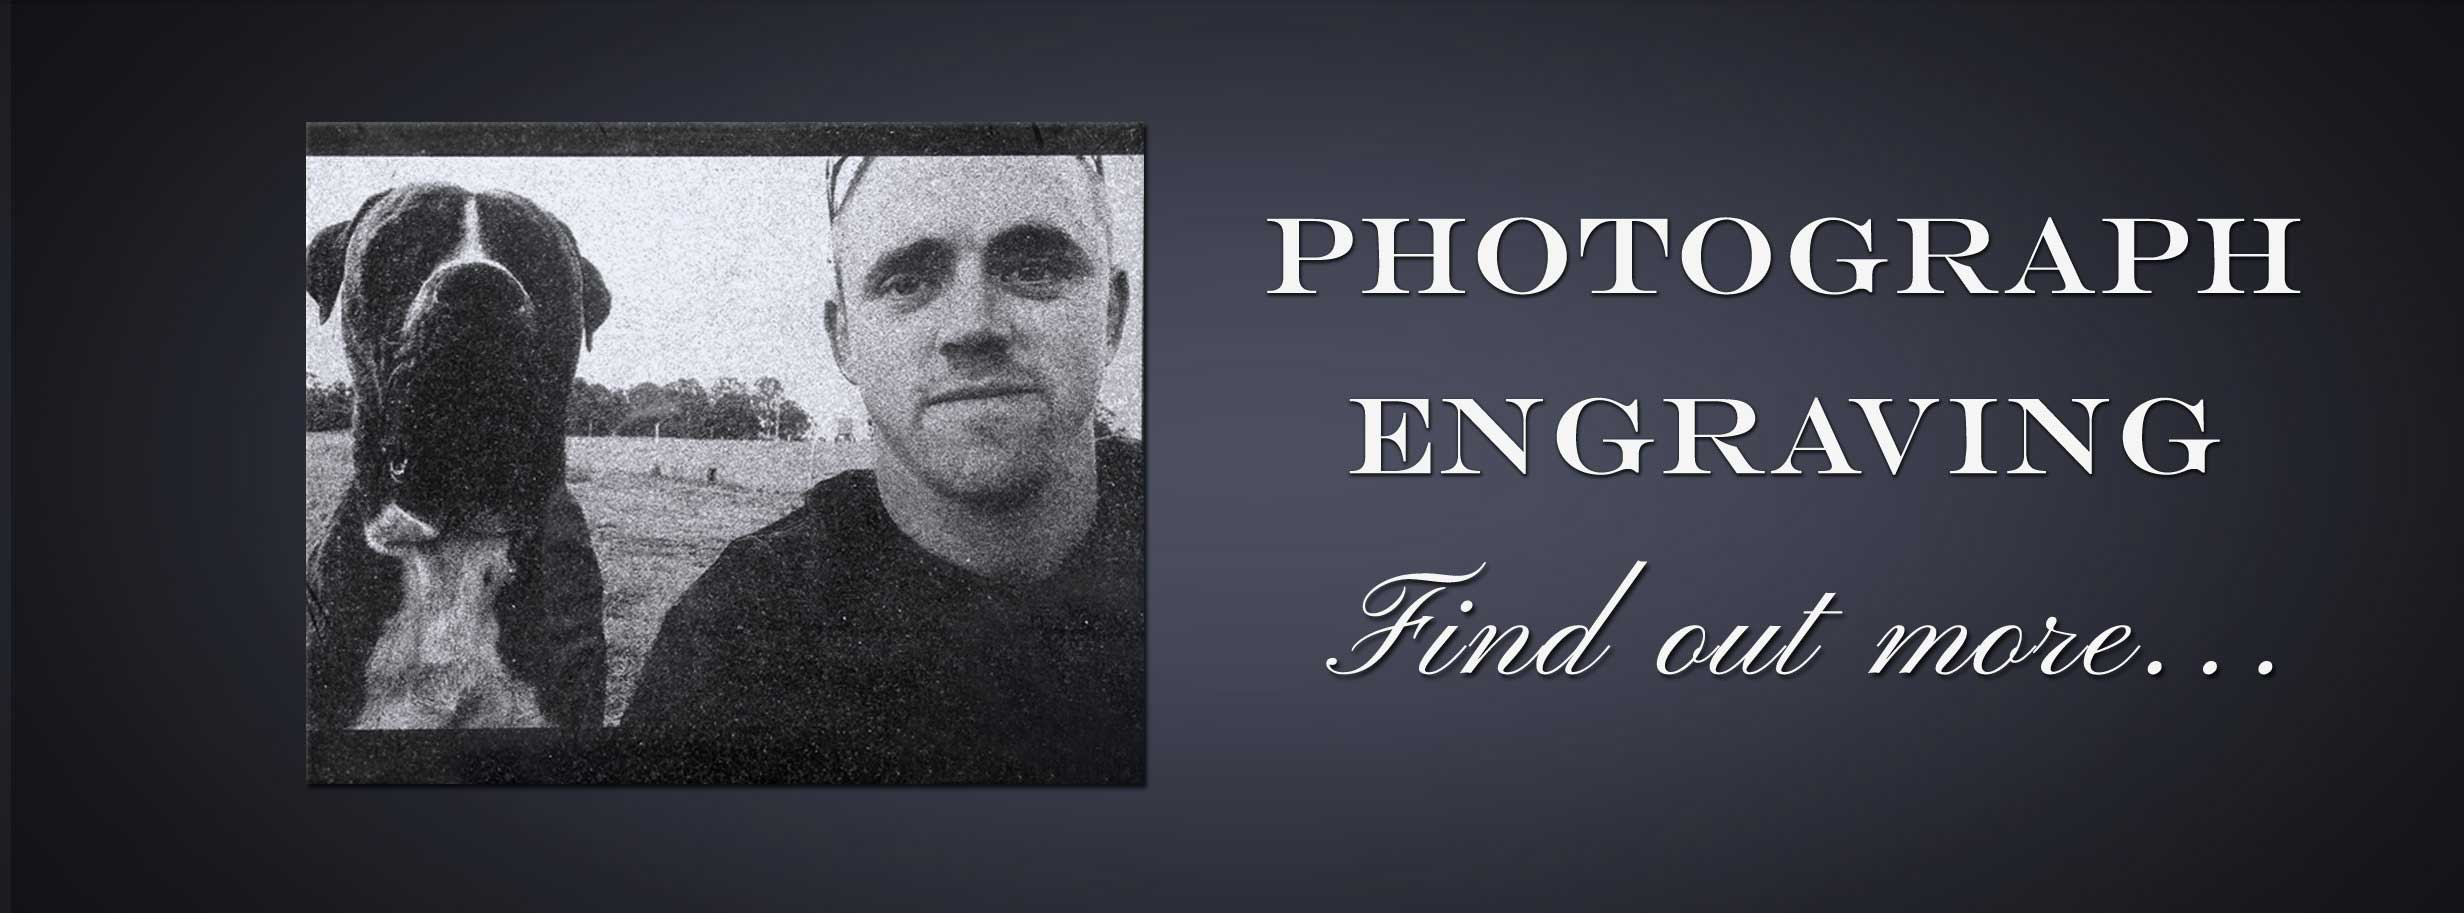 Photograph engraving brisbane grand & grave engraver